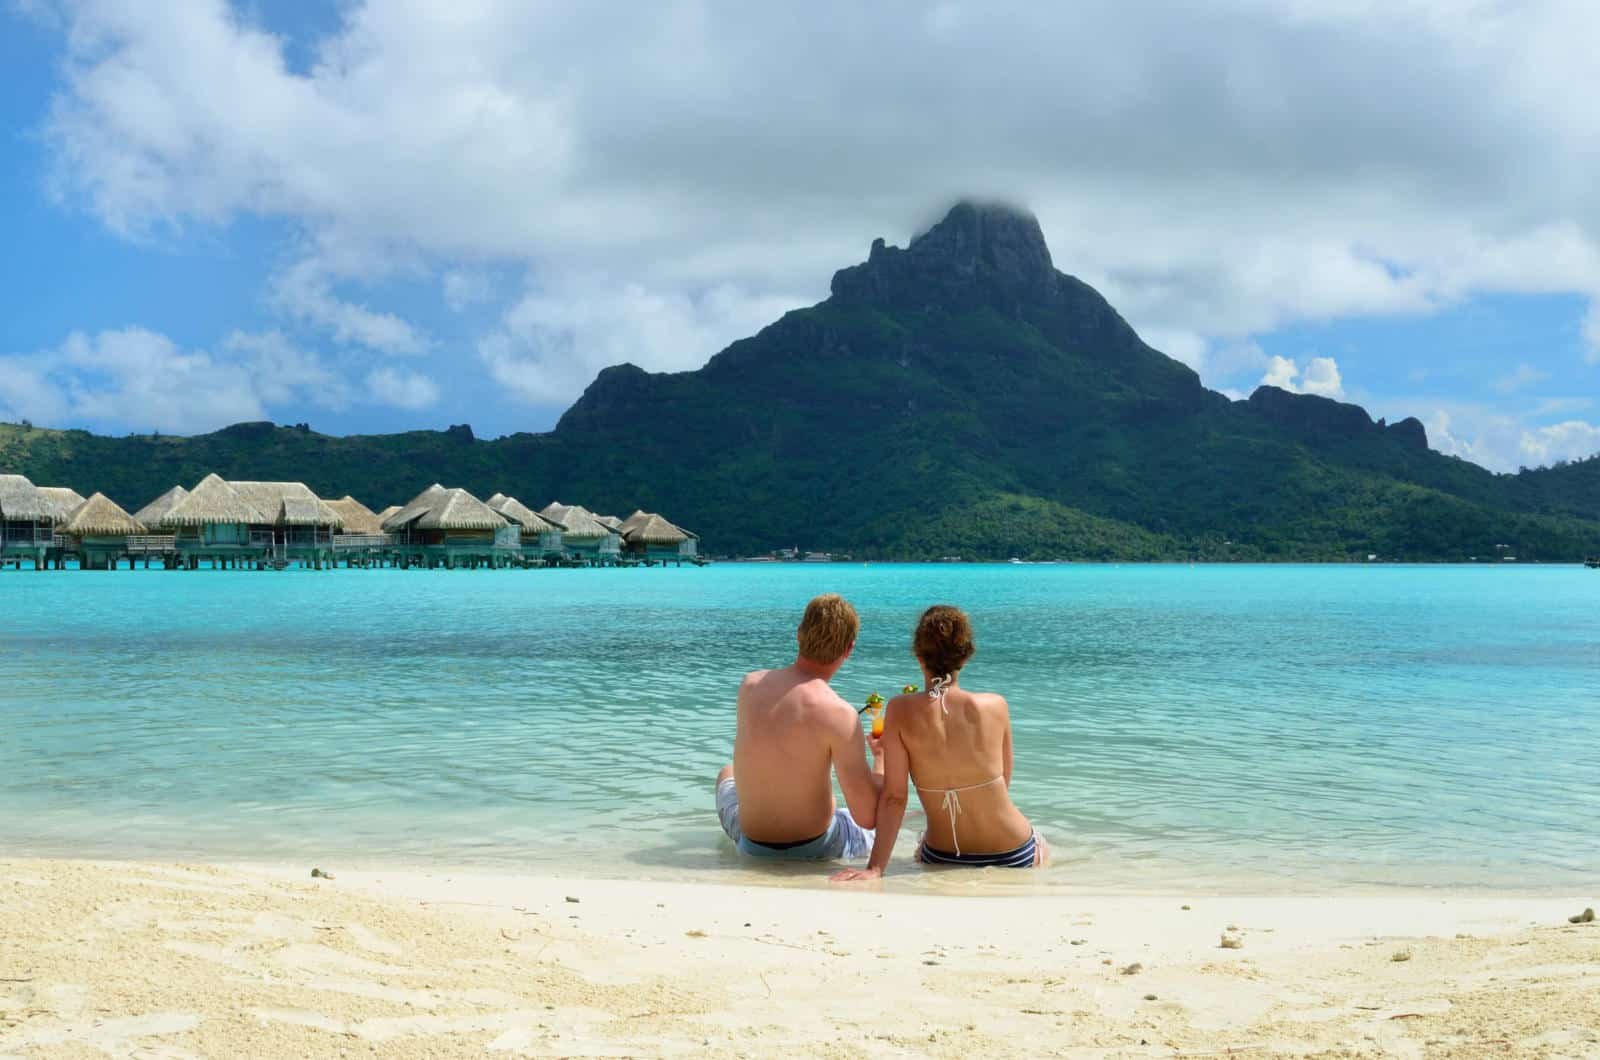 Couple on Bora Bora - Bora Bora Vs The Maldives which is best?